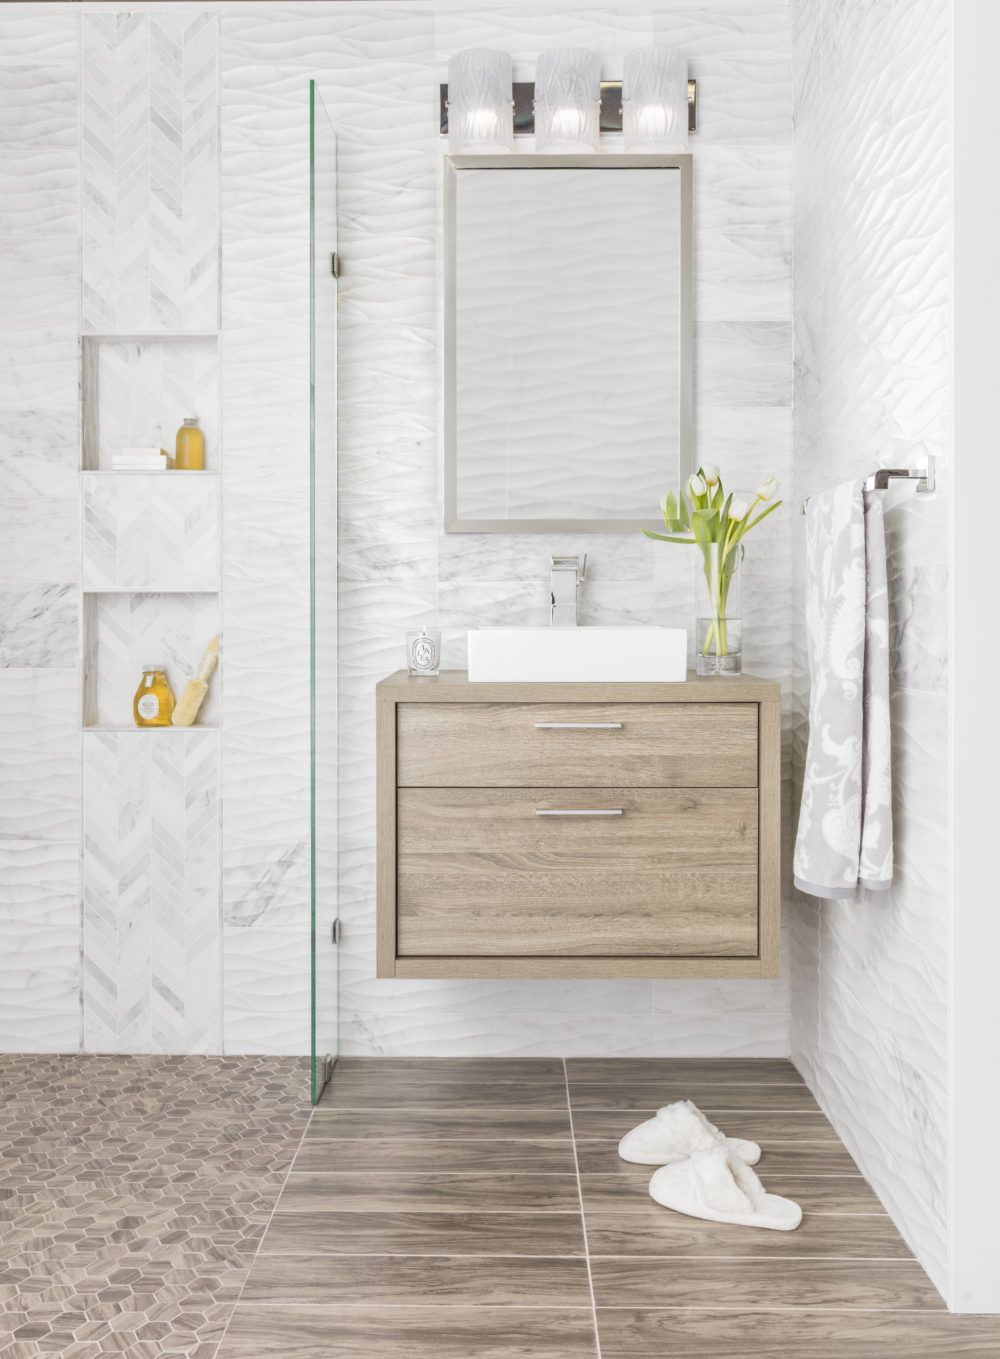 Tried And True Wall And Floor Tile Combinations The Tile Shop Blog Wood Look Tile Tile Bathroom Marble Wall Tiles